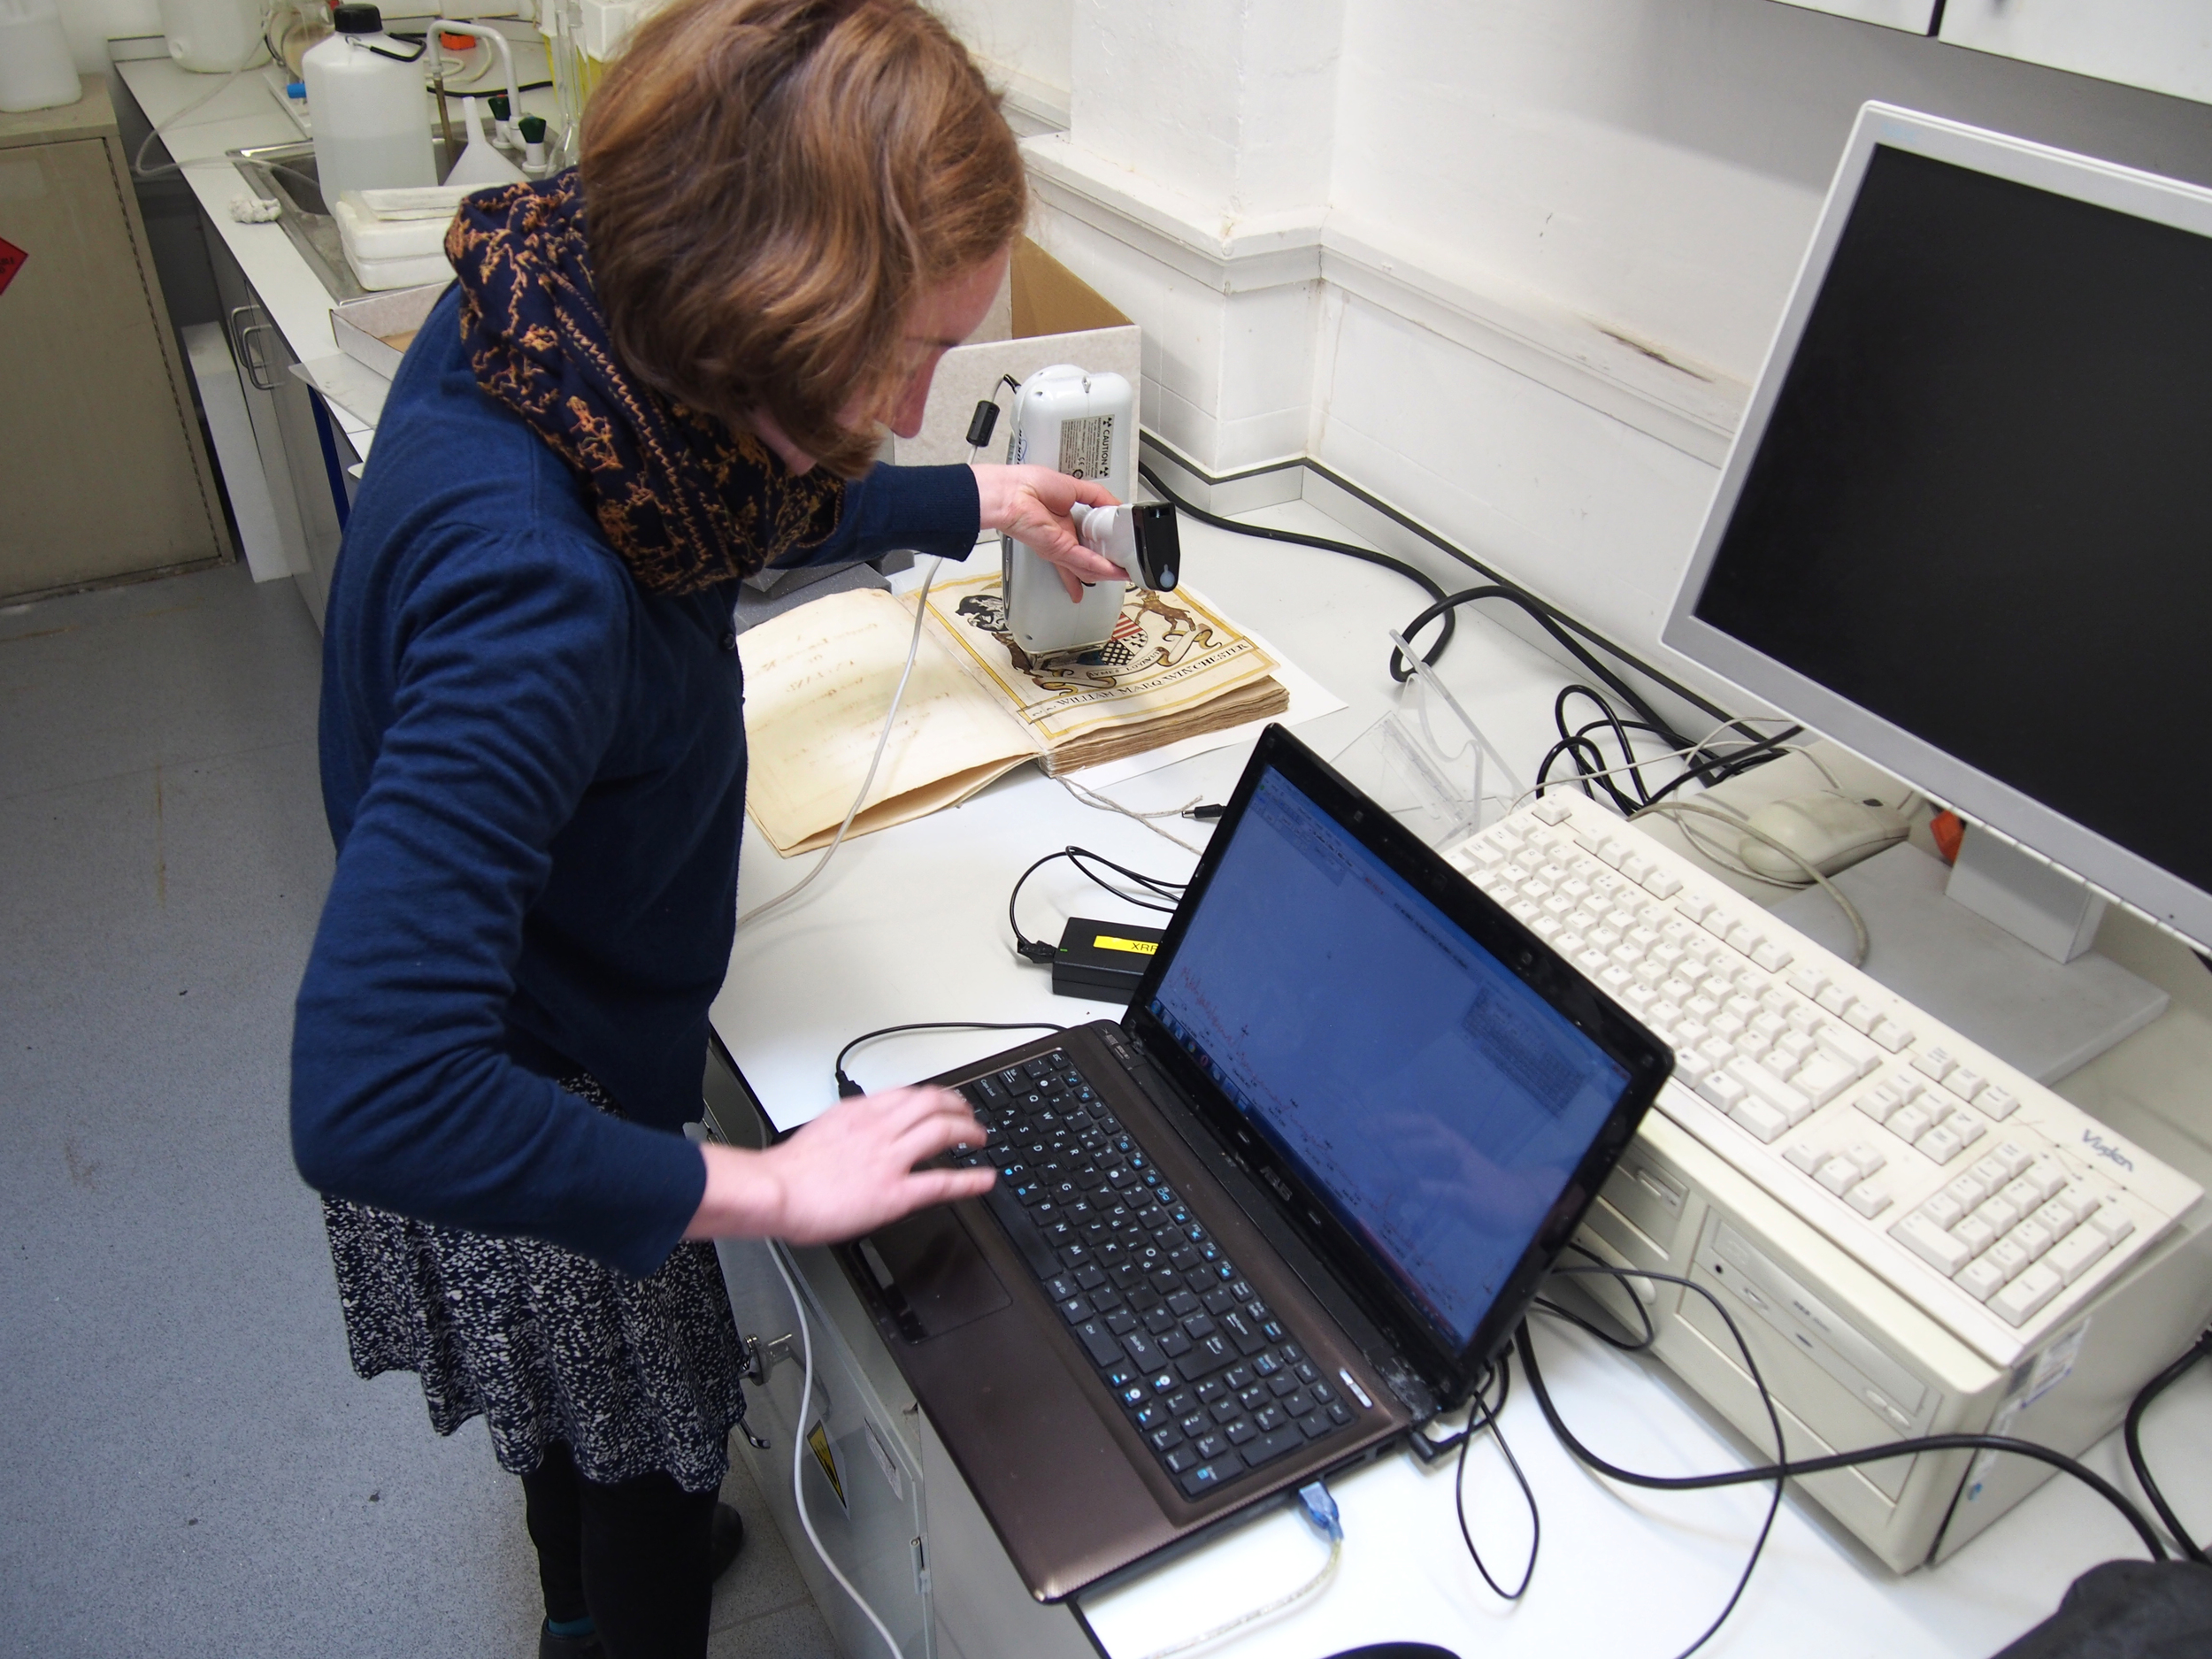 Nikki was trying to distinguish between orpiment and one of the lead-based yellows on her manuscript